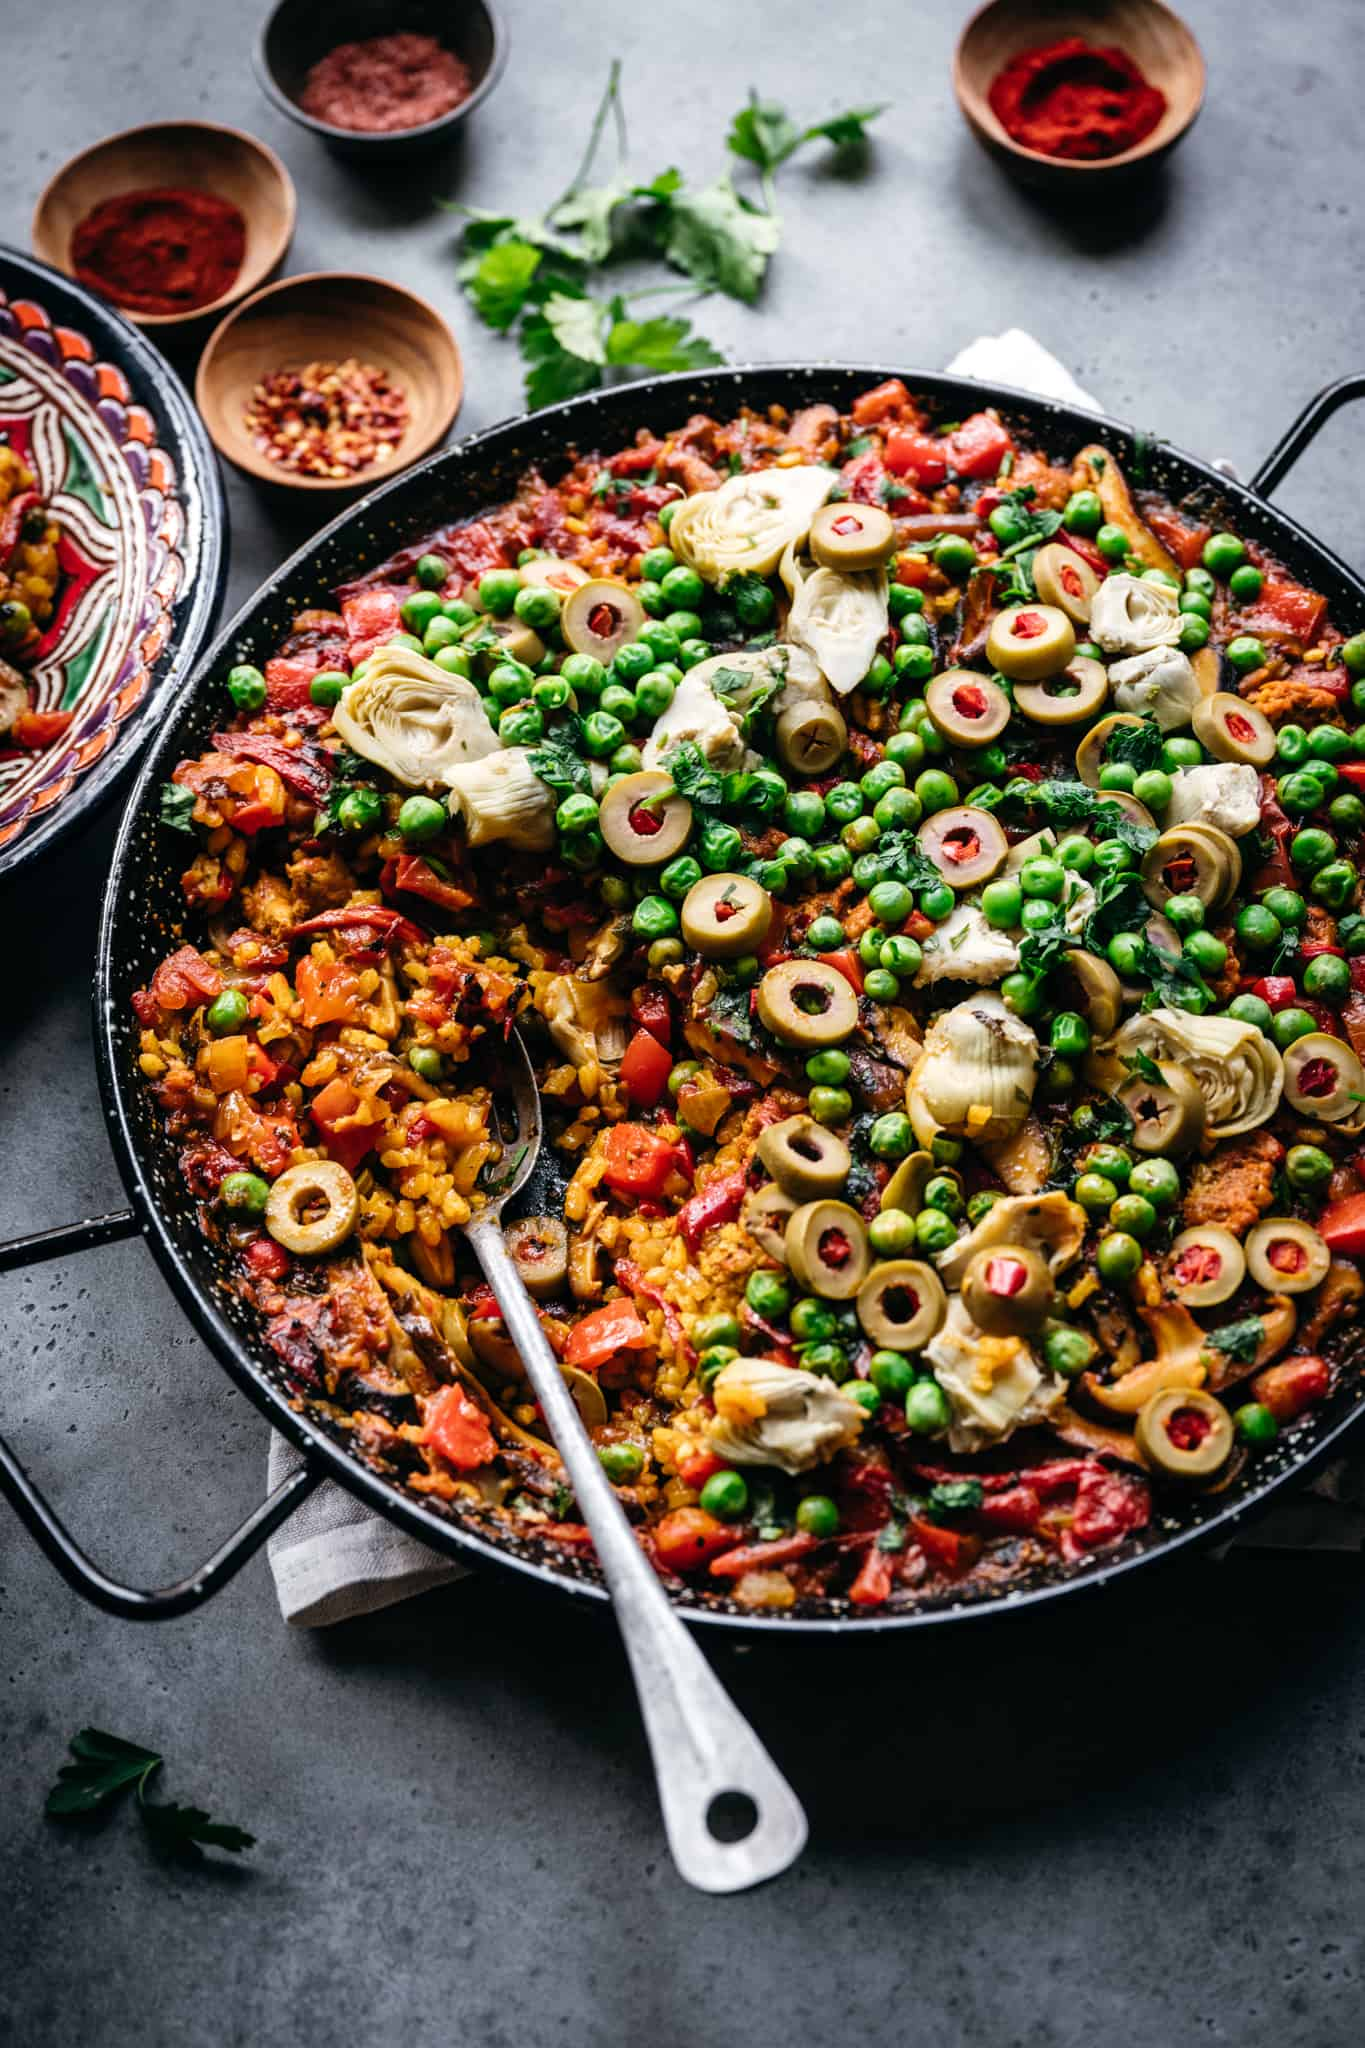 side view of vegan paella with vegetables in pan